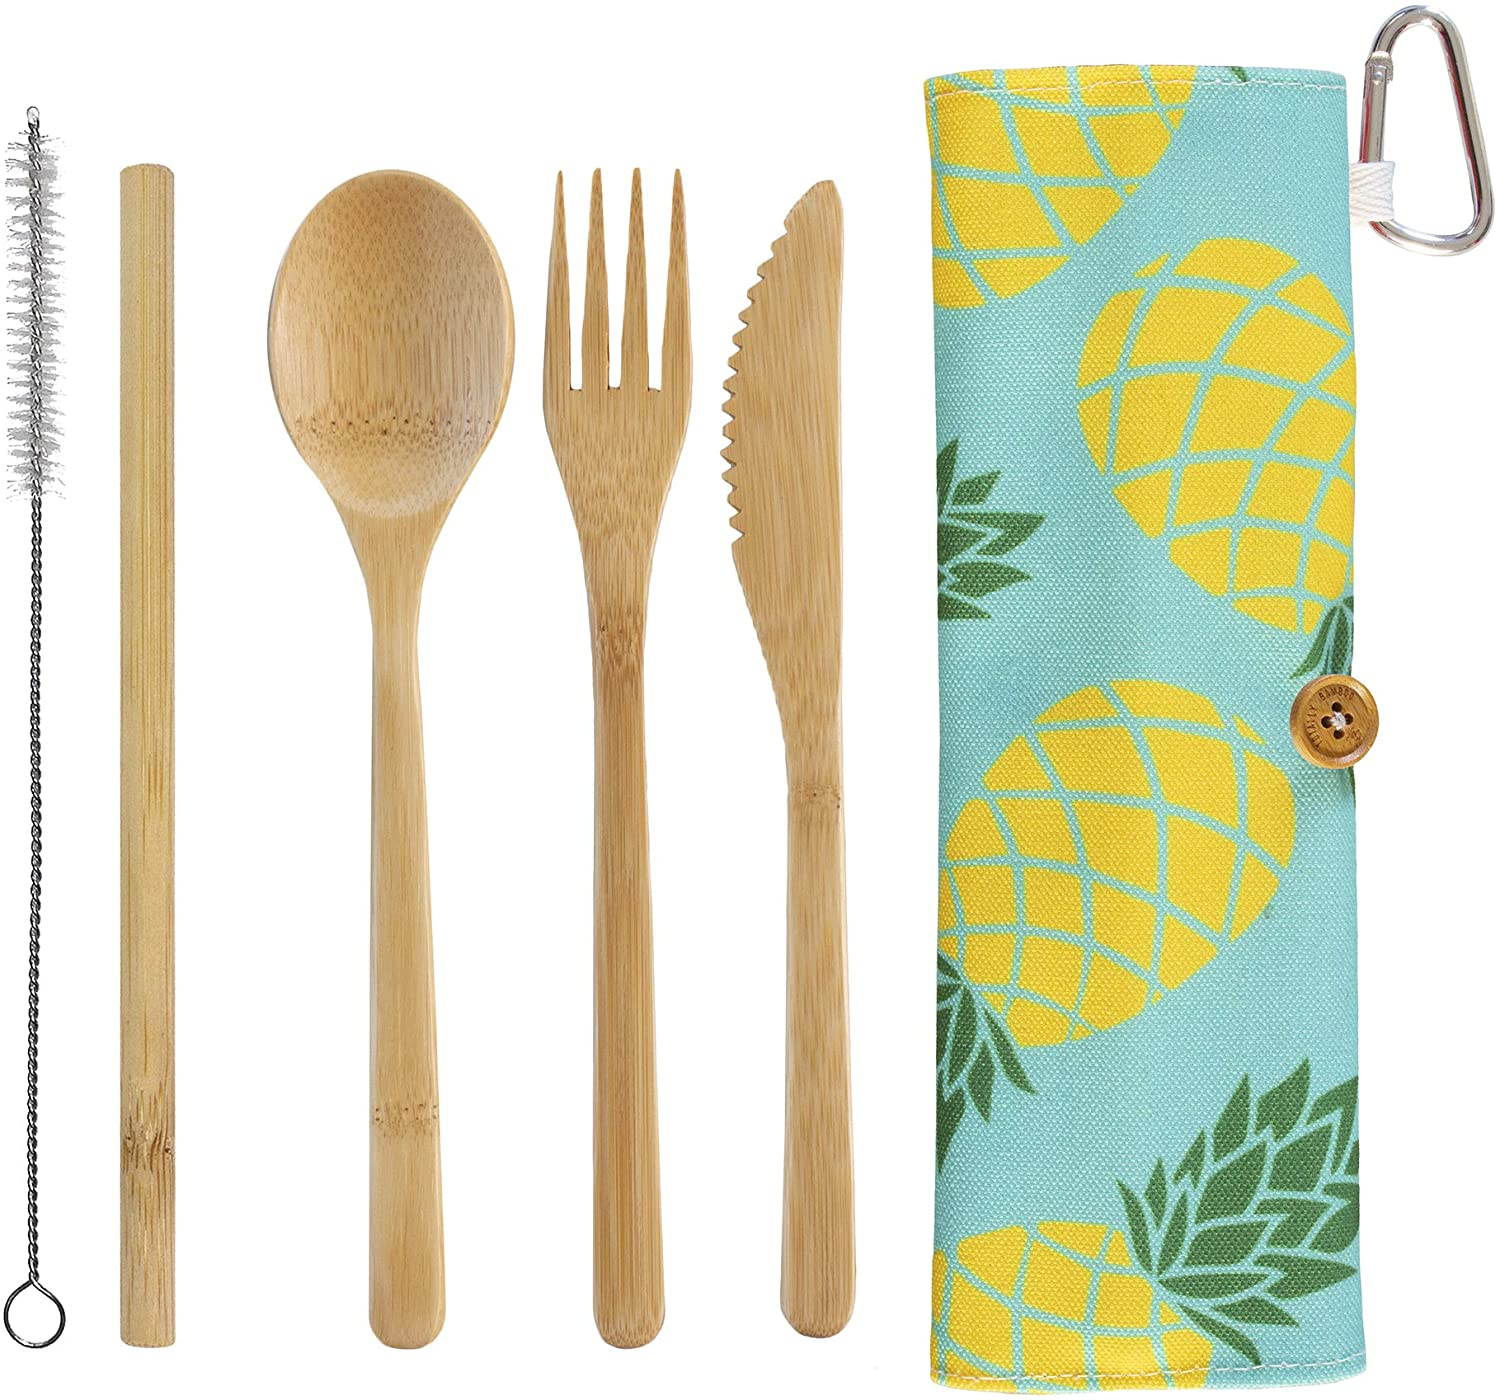 Totally Bamboo Take Along Reusable Utensil Set with Blue Pineapple Style Travel Case | Includes Bamboo Spoon, Fork, Knife and Drinking Straw | Dishwasher Safe